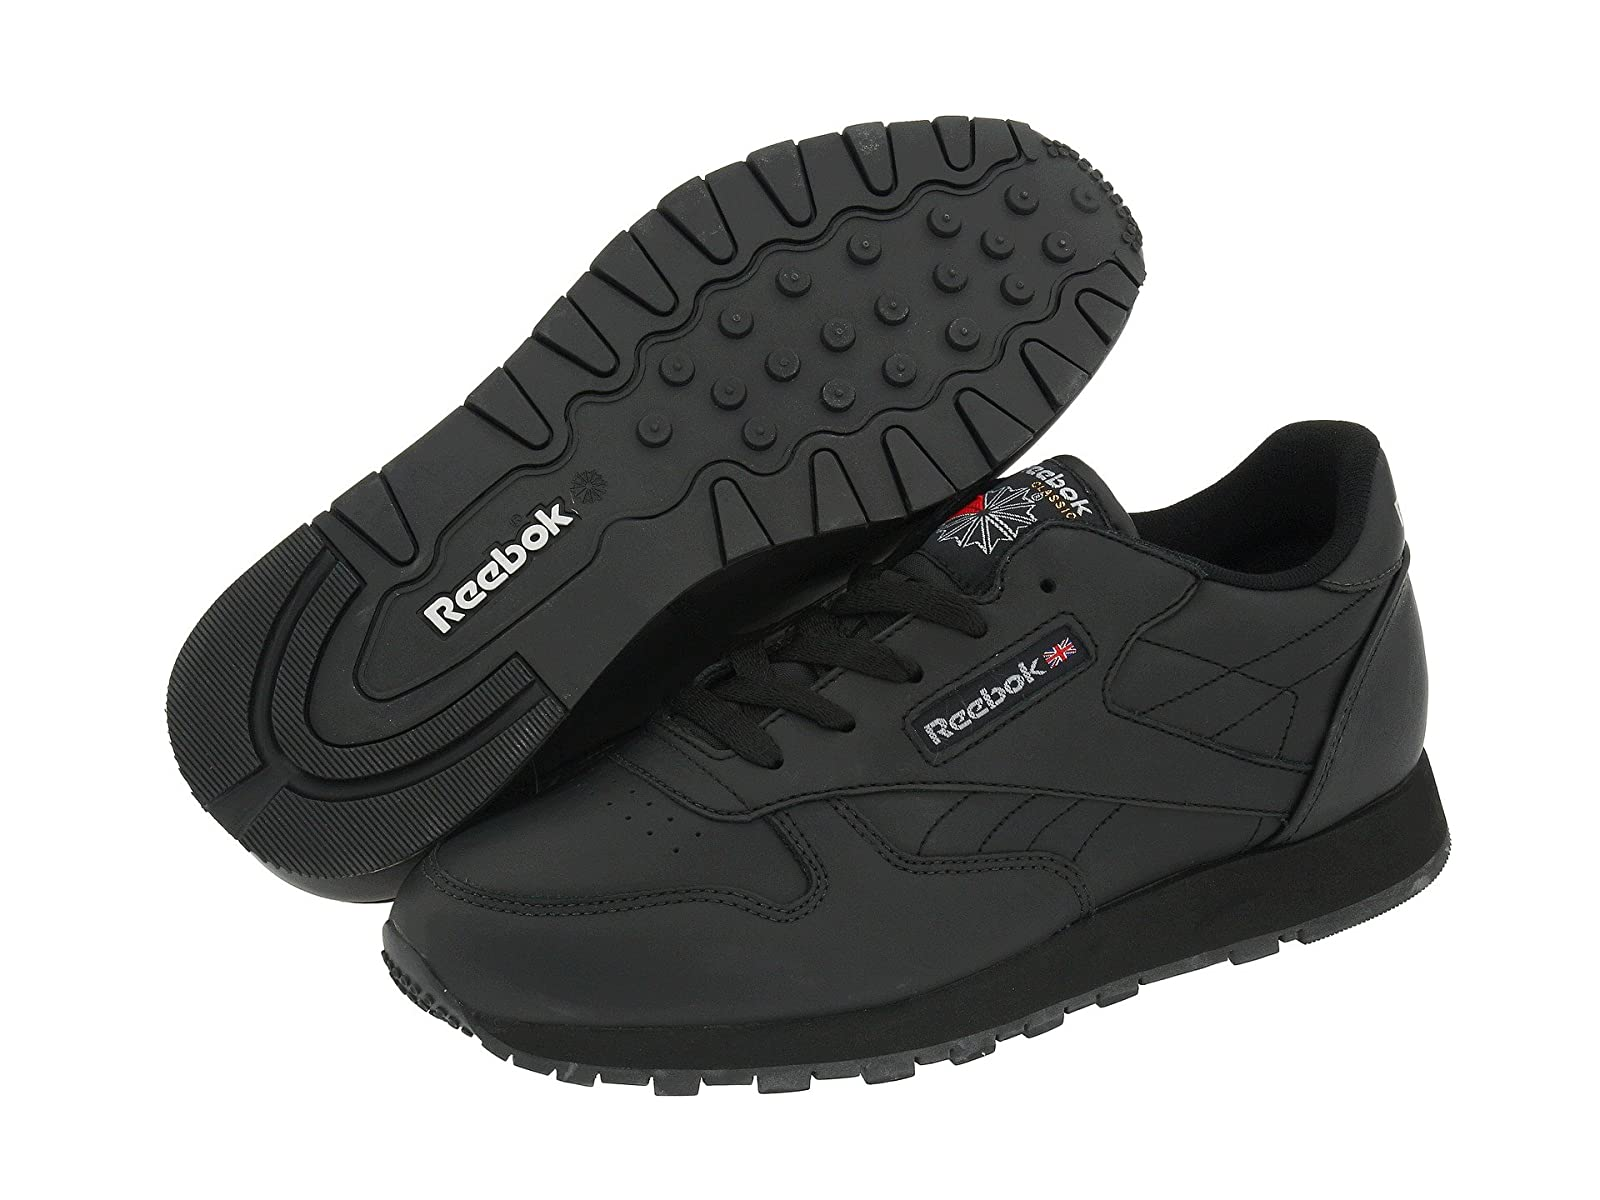 Reebok Kids Classic Leather (Big Kid)Atmospheric grades have affordable shoes